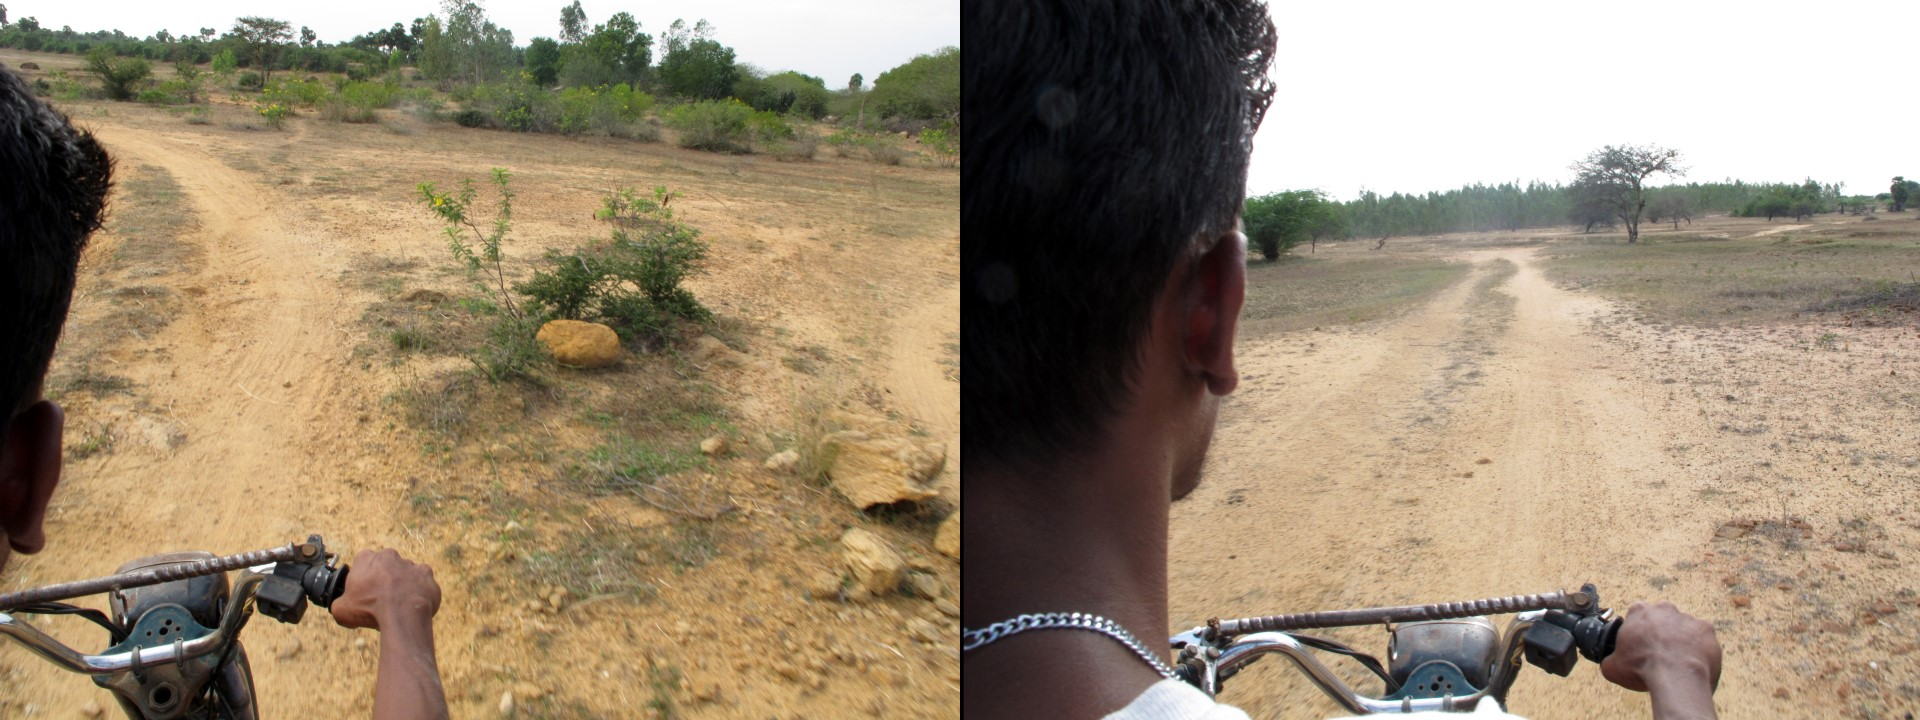 Ravi driving me on the back of his TVS through the rough dirt roads to see the bullock race